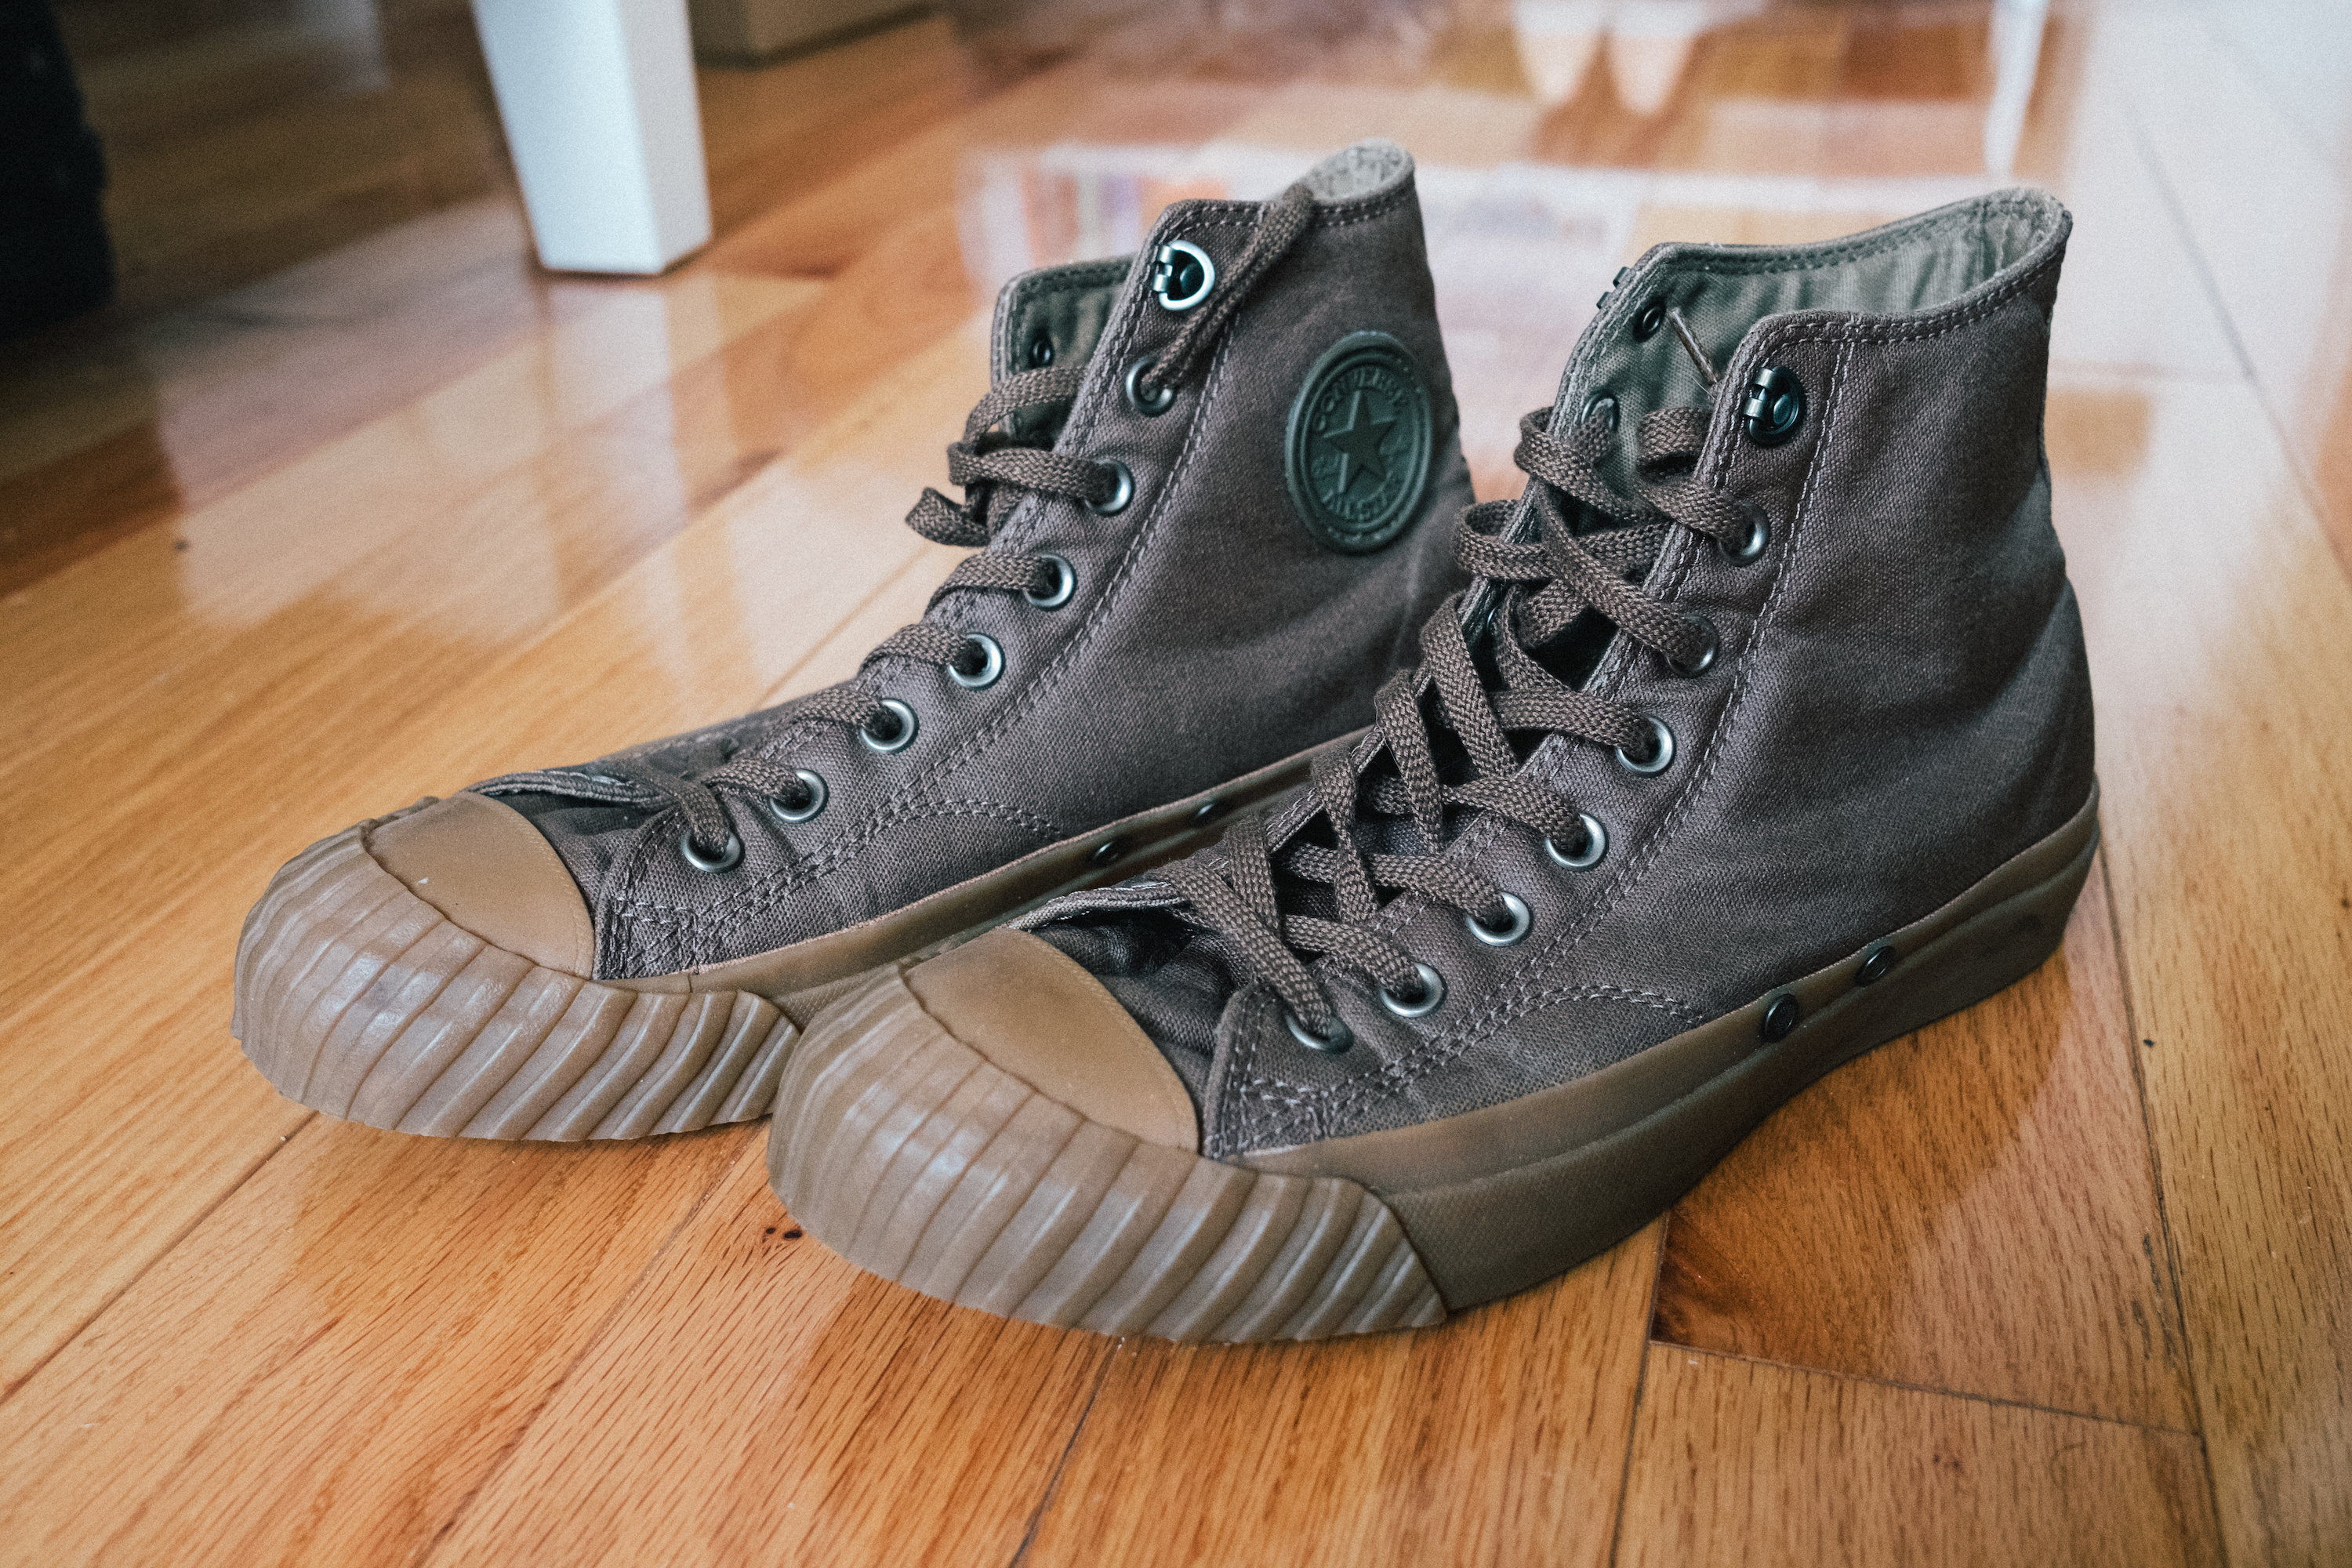 b39b7f38a3c7 Converse Ace Hotel x Converse Chuck Taylor All Star Bosey Size 9 - Hi-Top  Sneakers for Sale - Grailed